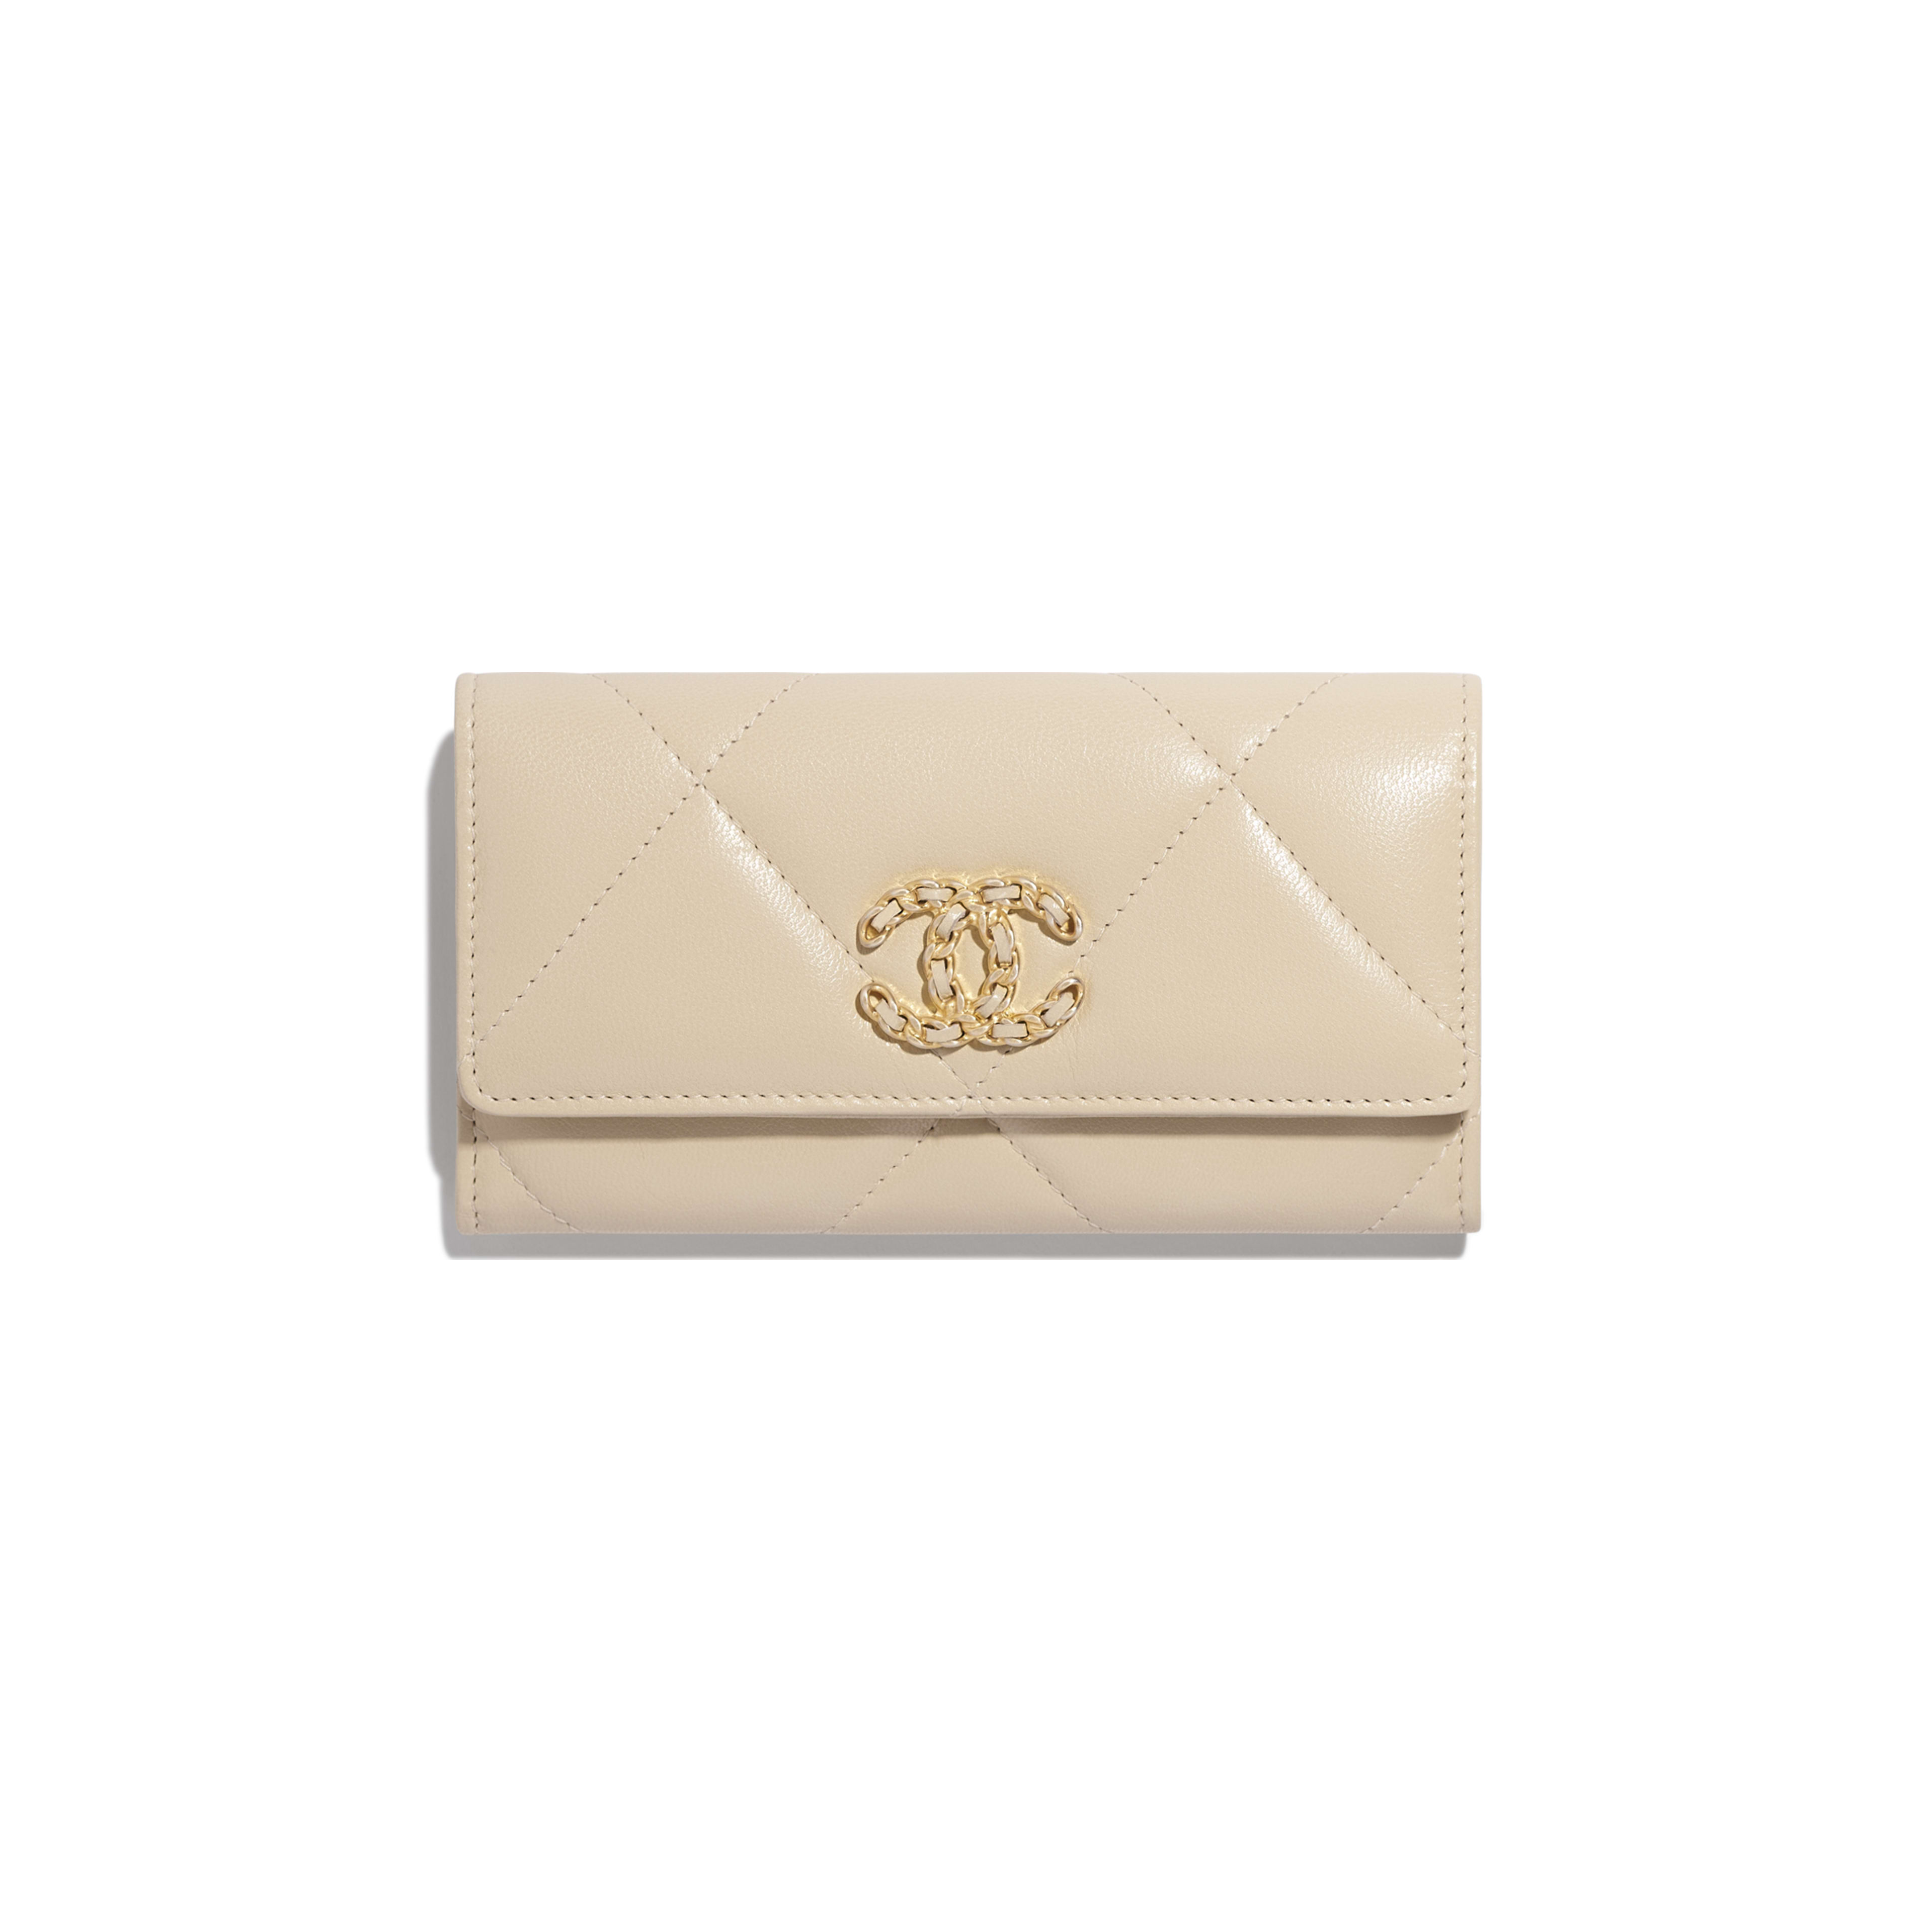 CHANEL 19 Flap Wallet - Beige - Goatskin, Gold-Tone, Silver-Tone & Ruthenium-Finish Metal - Default view - see full sized version